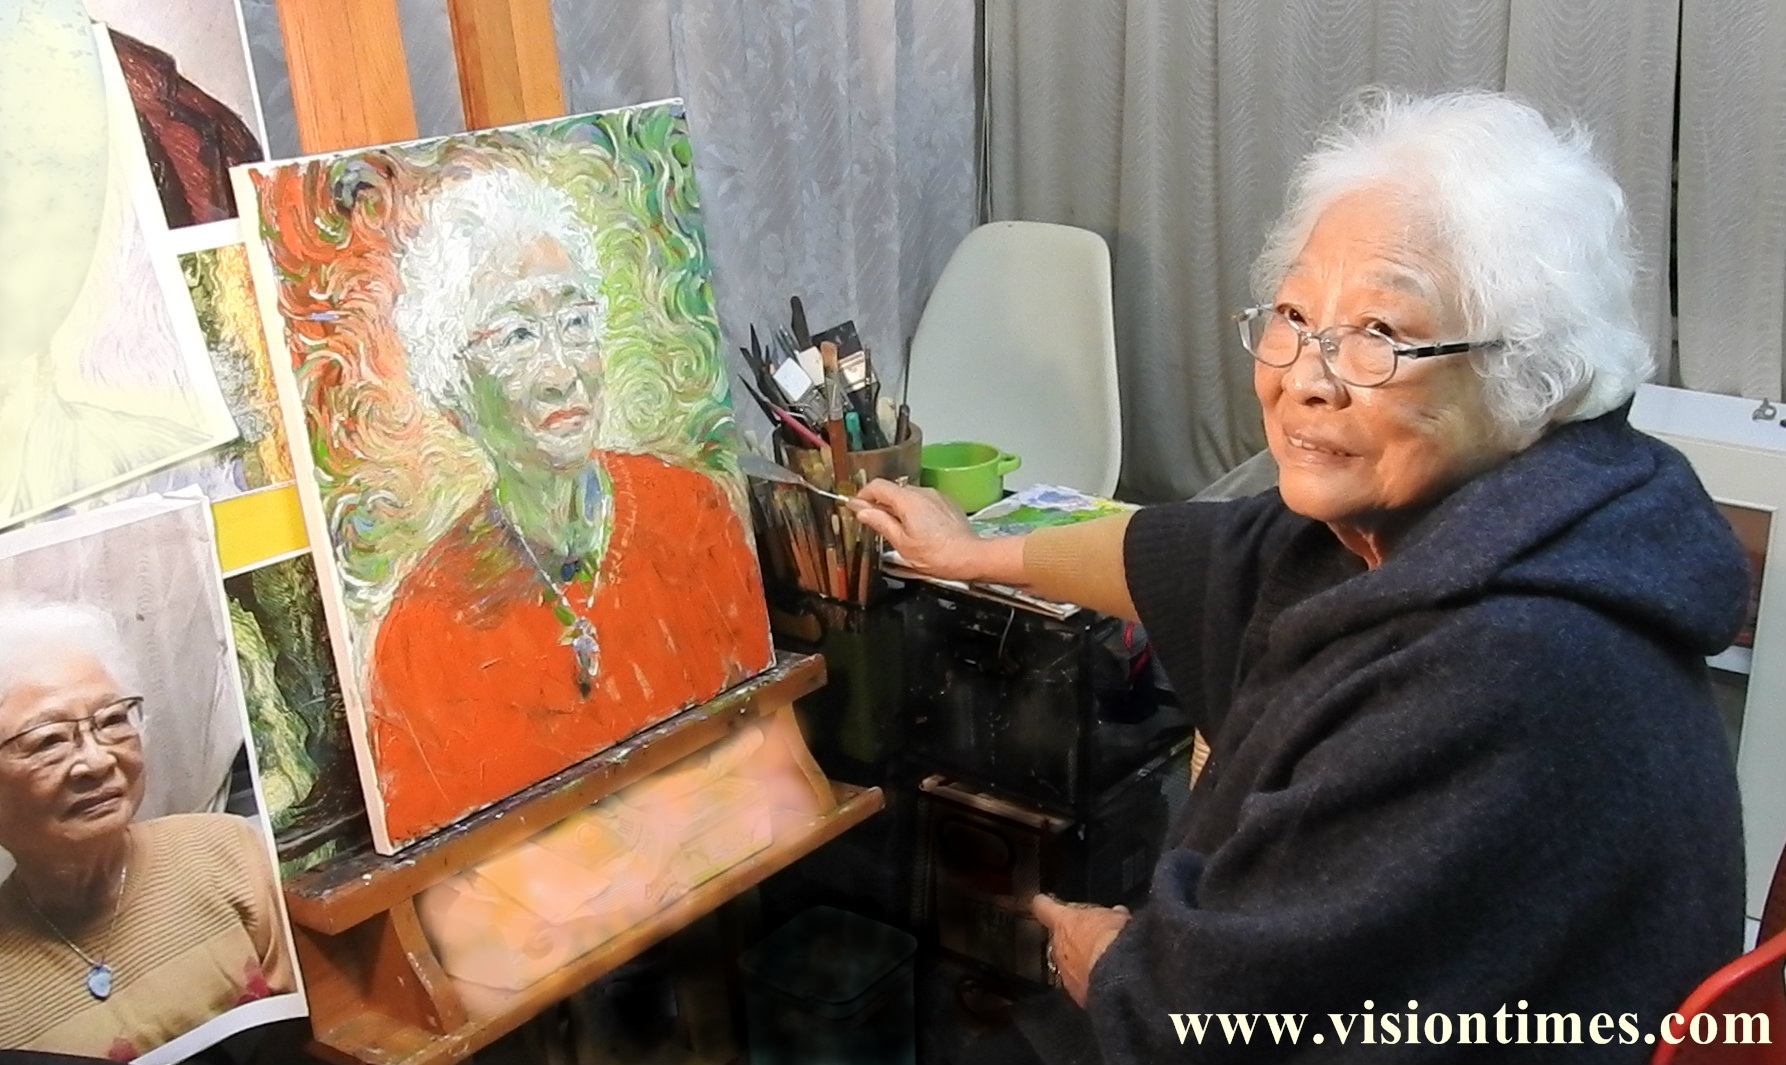 Wang Chen Min-chu paints her self-portrait in her studio on the outskirts in Taipei, Taiwan. (Image: Billy Shyu/ Vision Times)